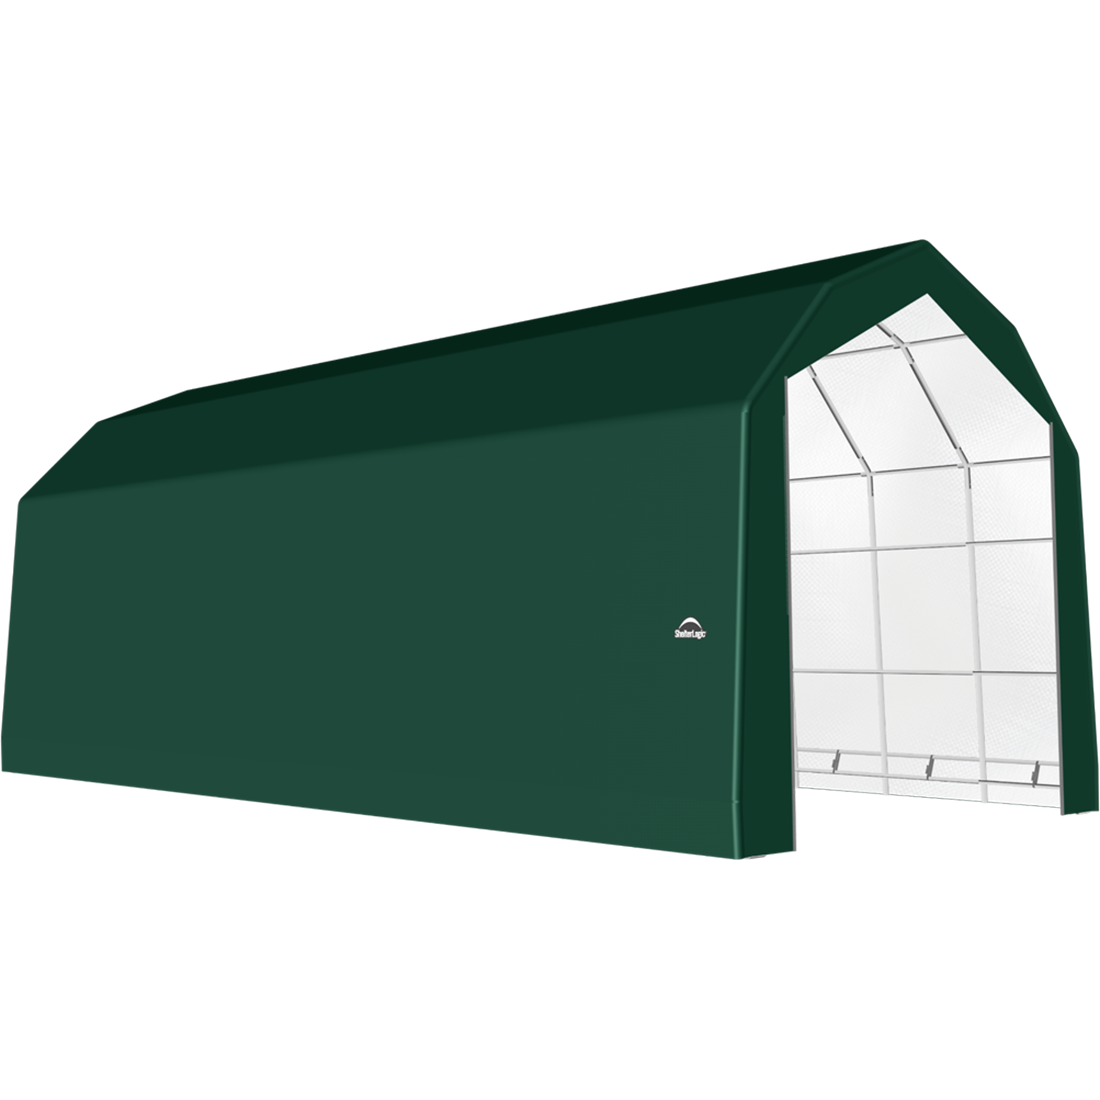 SP Barn 20X40X18 Green 14 oz PE Shelter